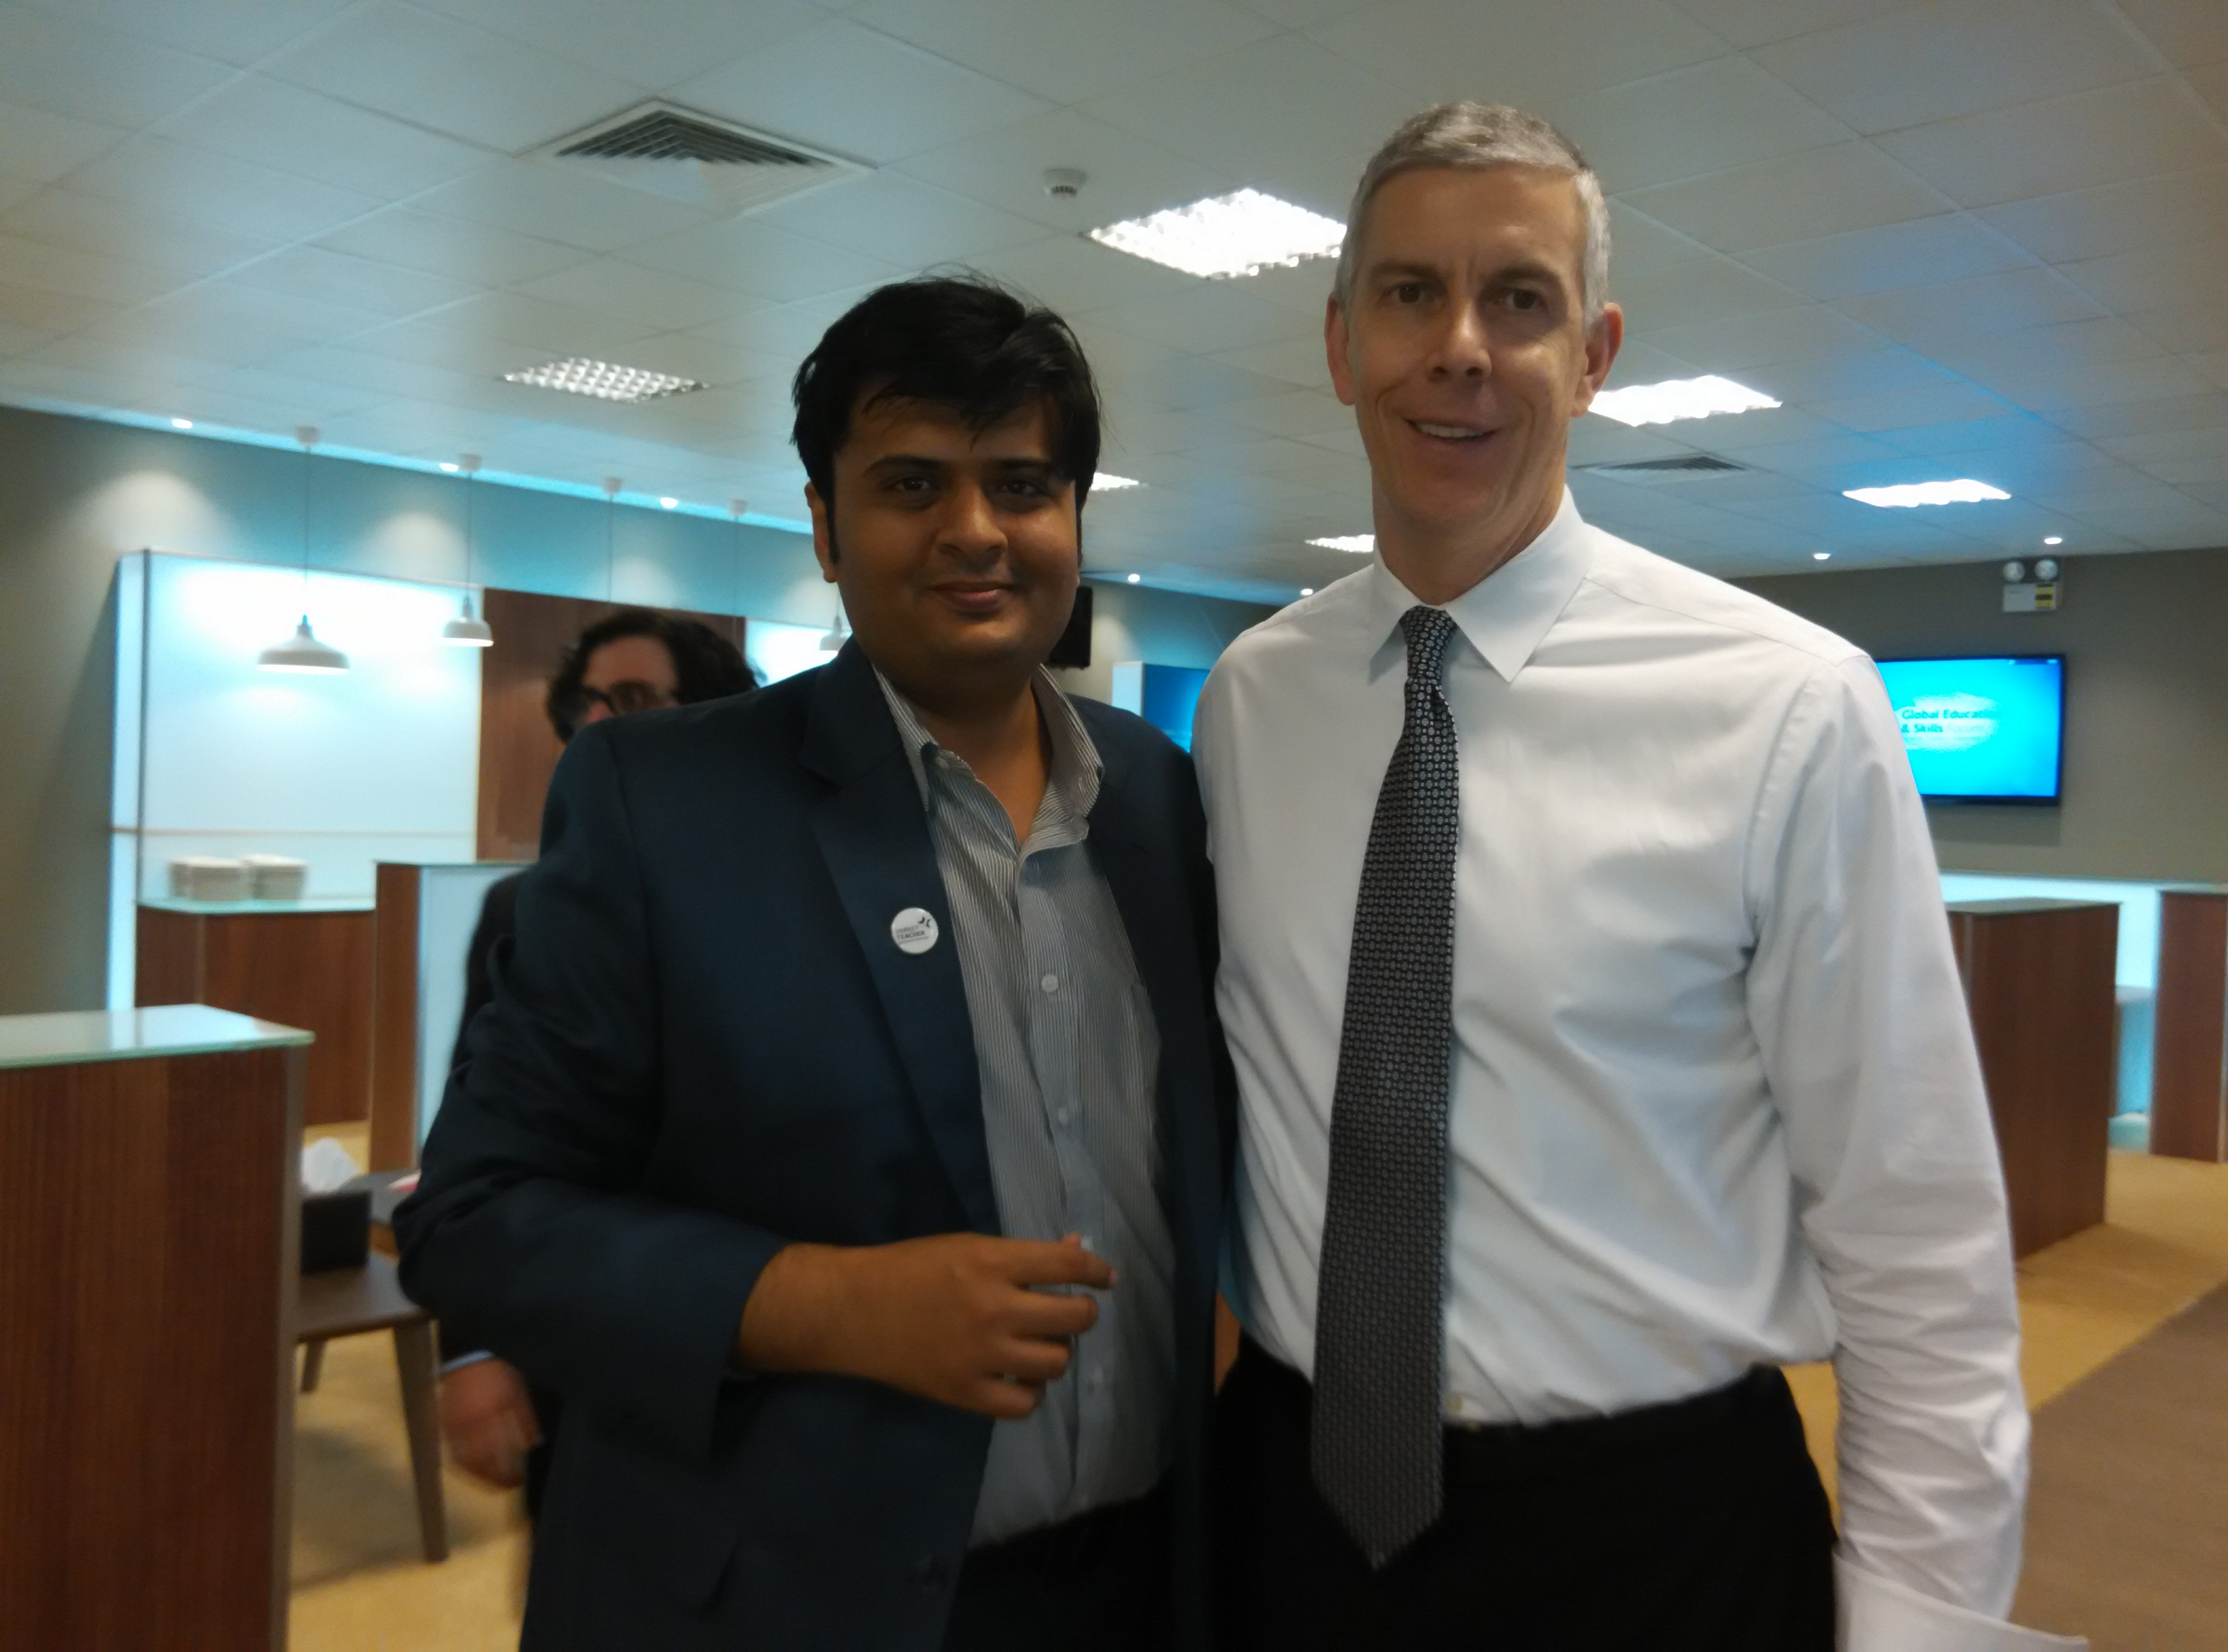 With US Secretary of Education Arne Duncan